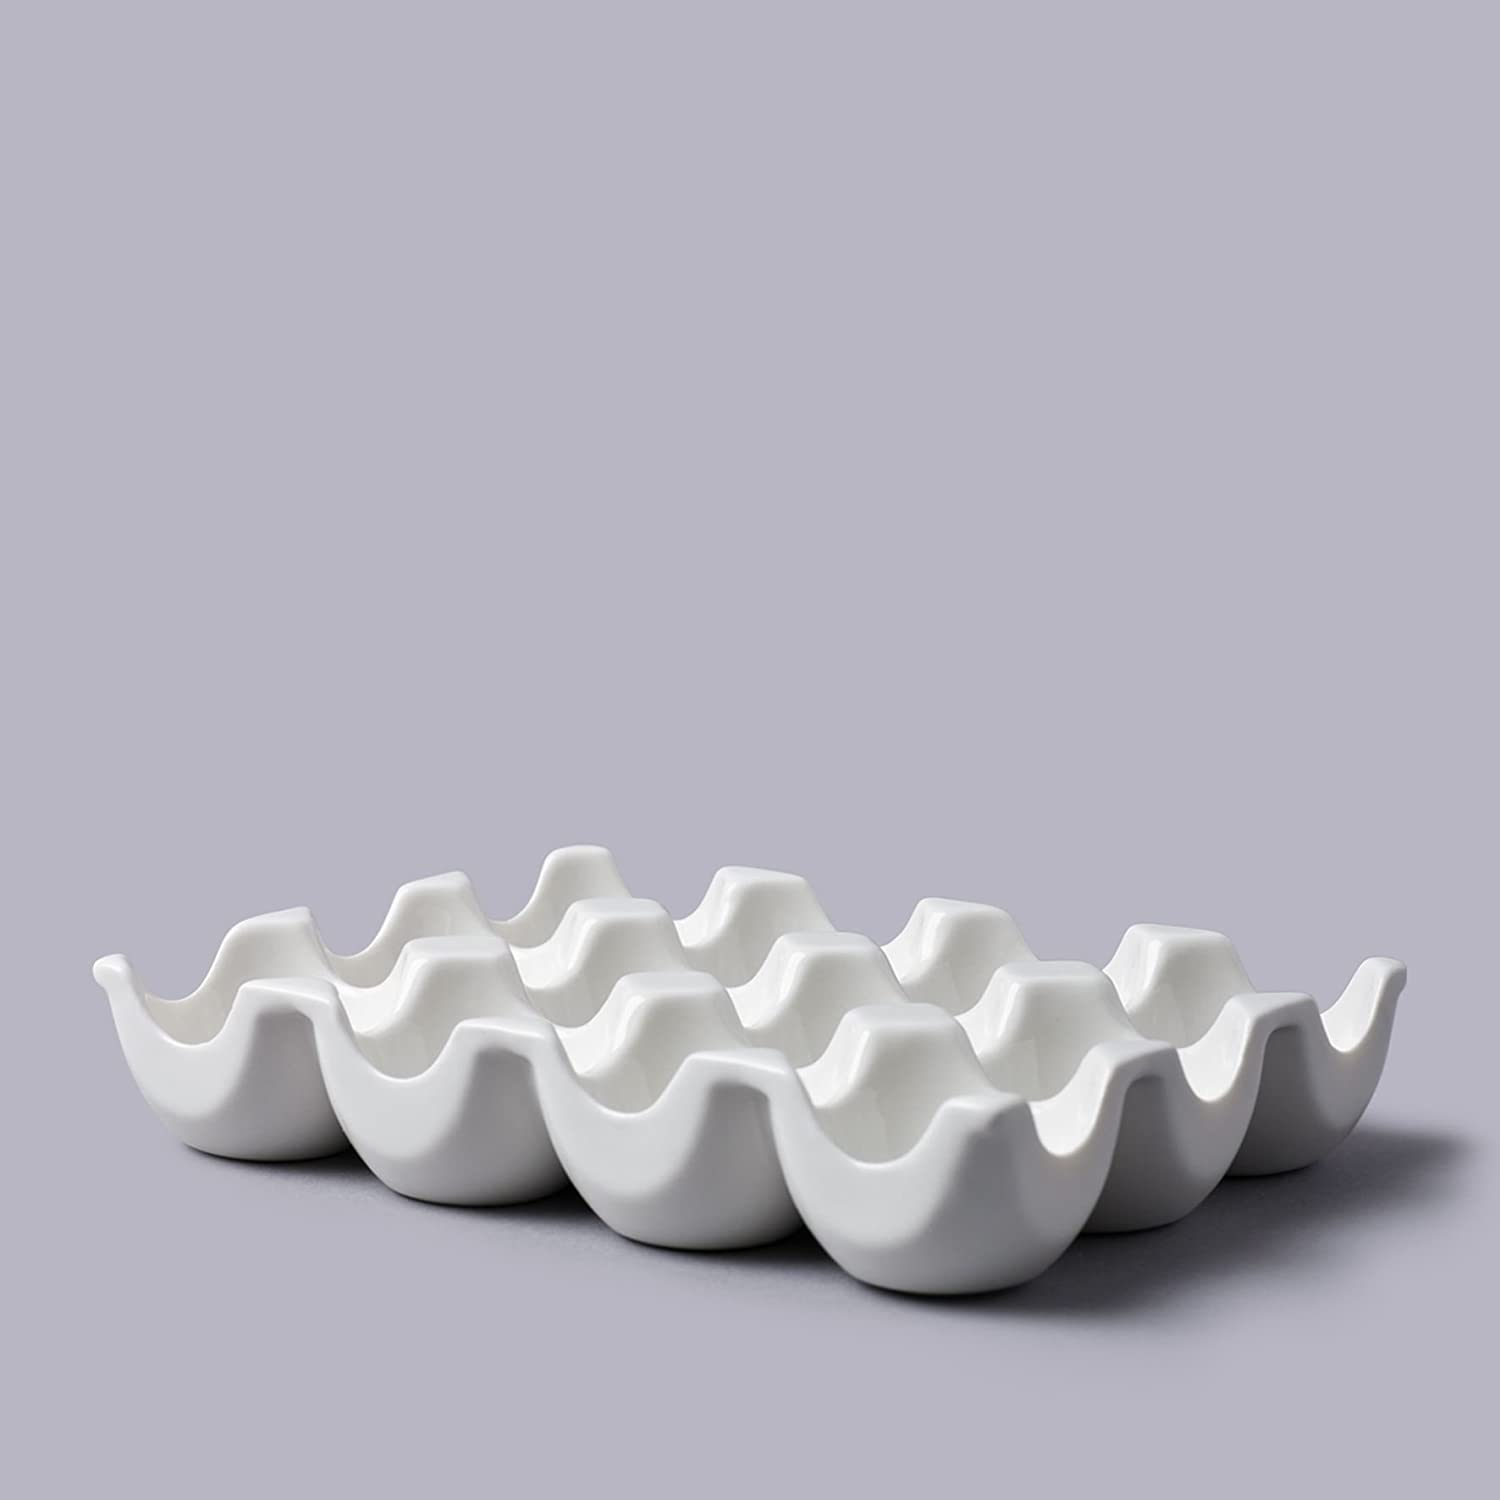 CKS White Ceramic Egg Dish Holds 12 Eggs